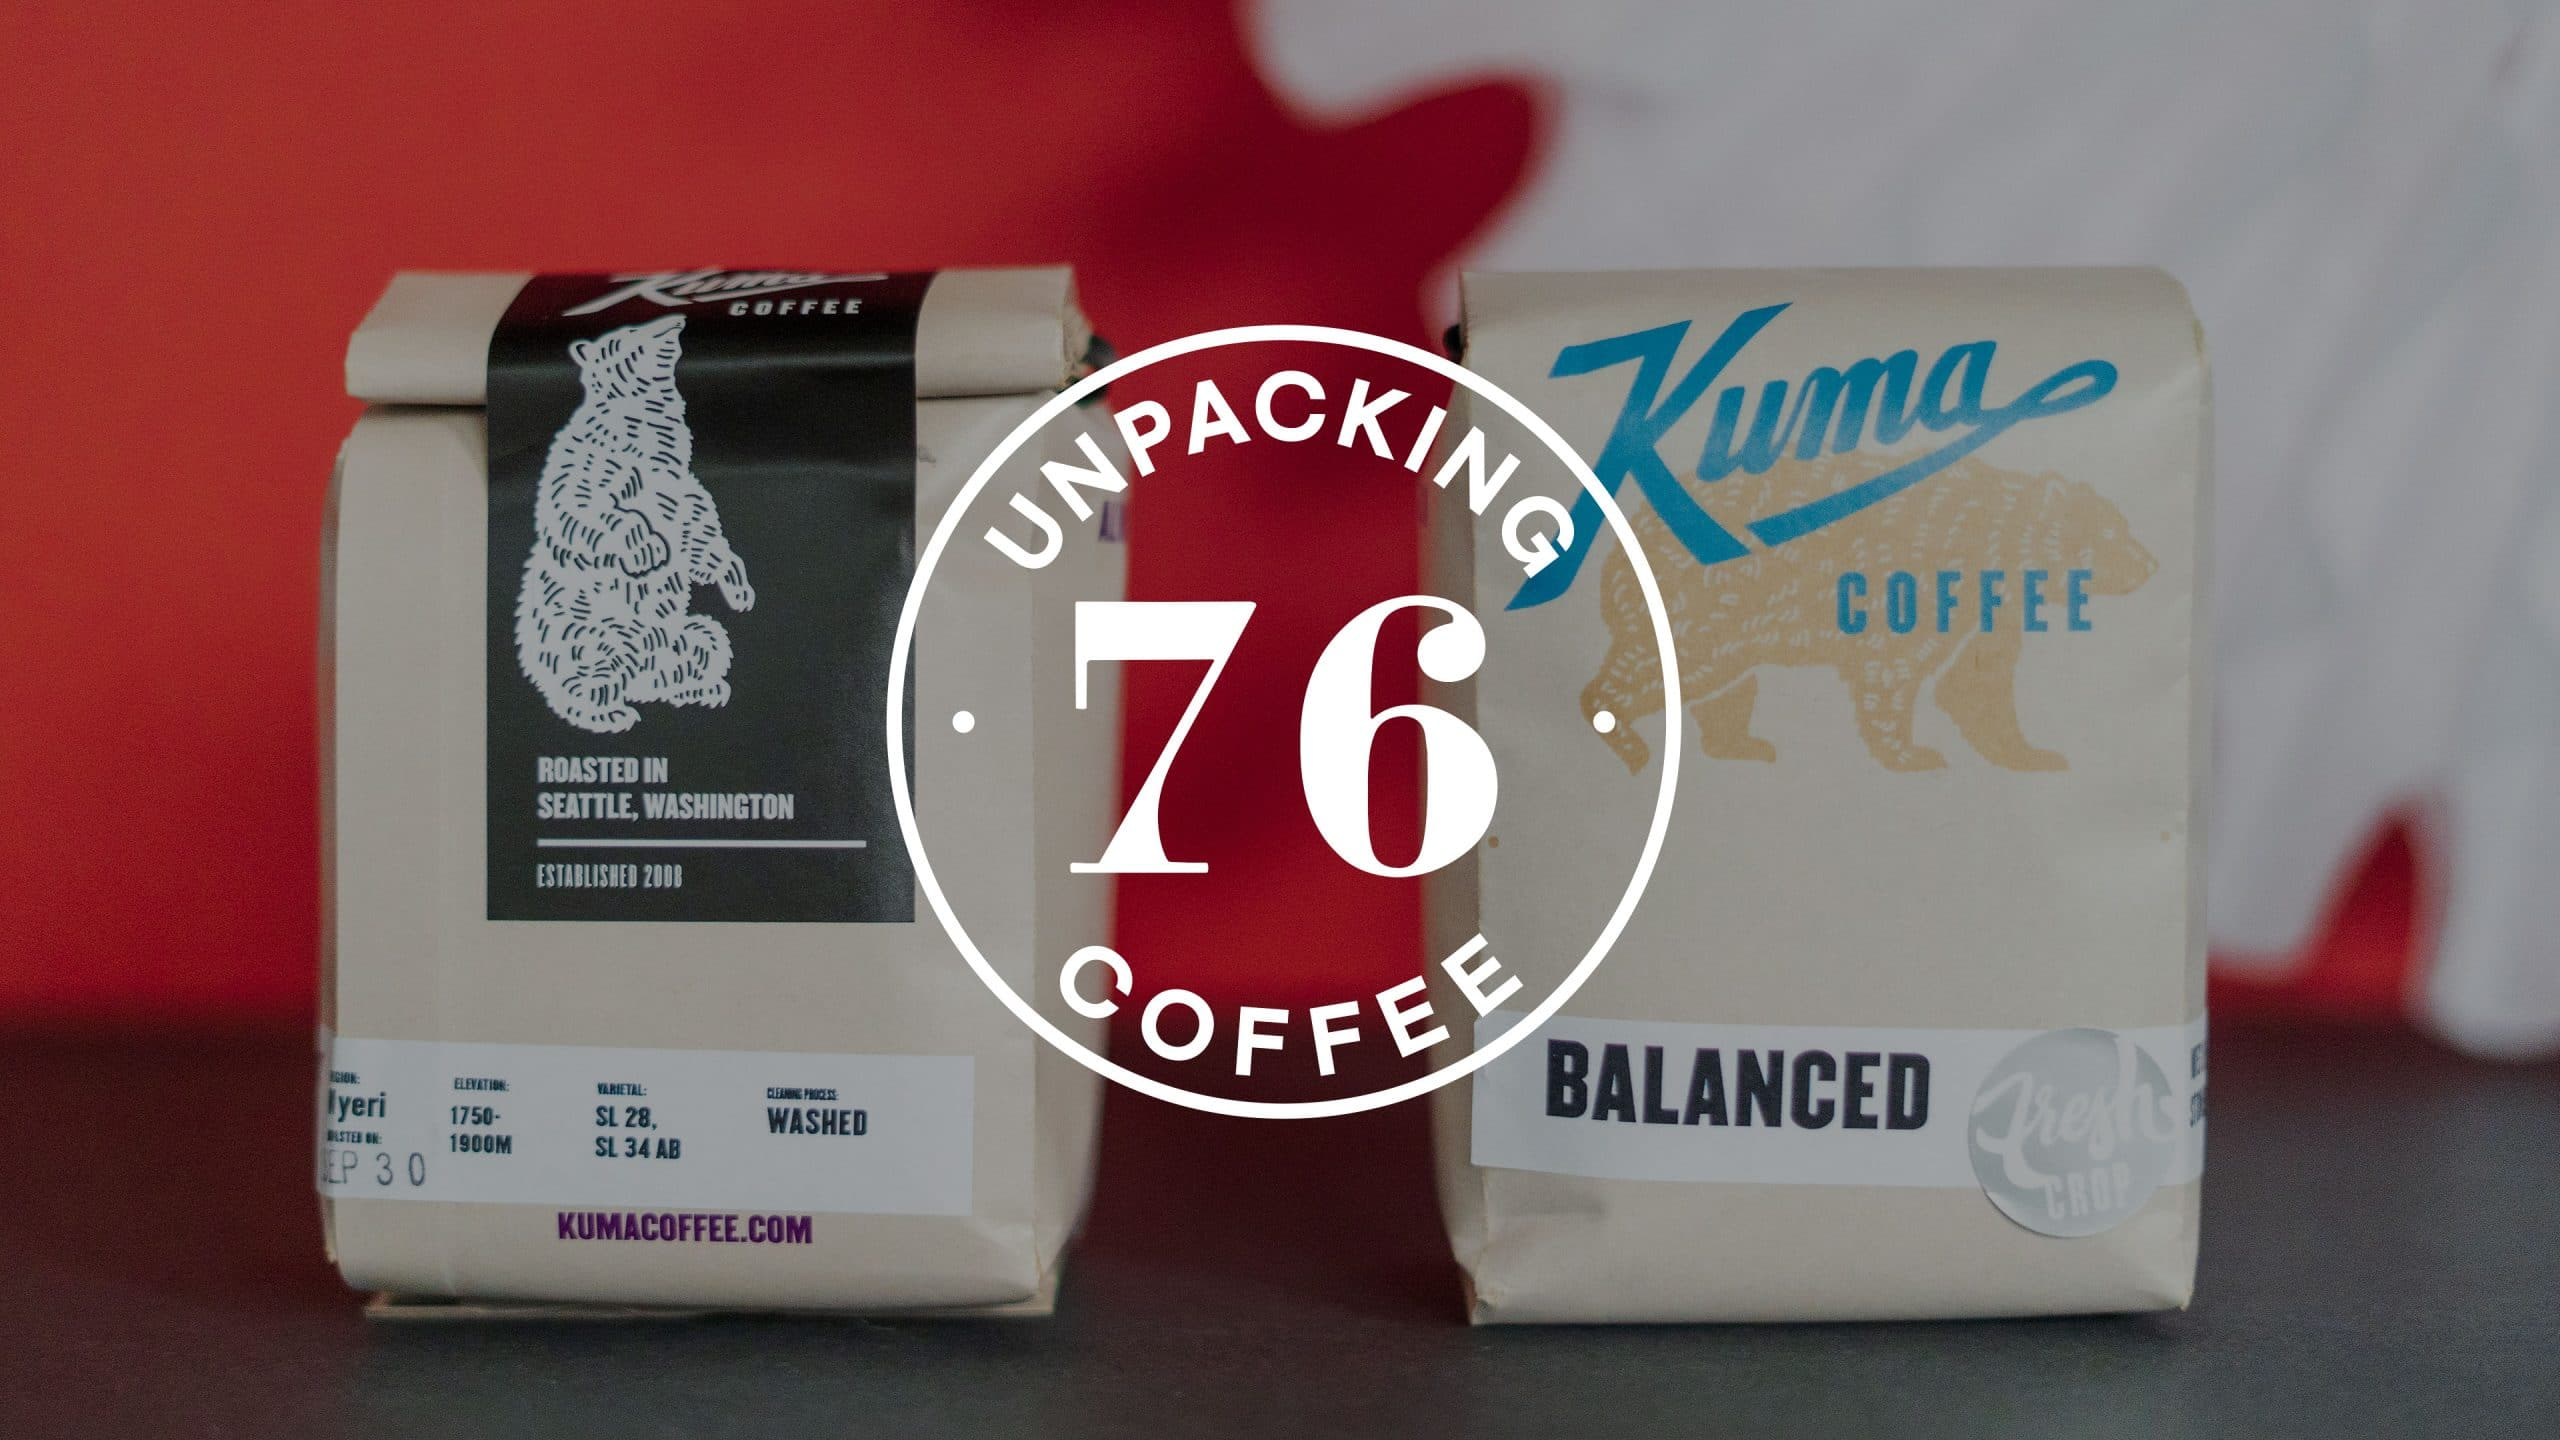 Unpacking Coffee episode cover for Kuma Coffee